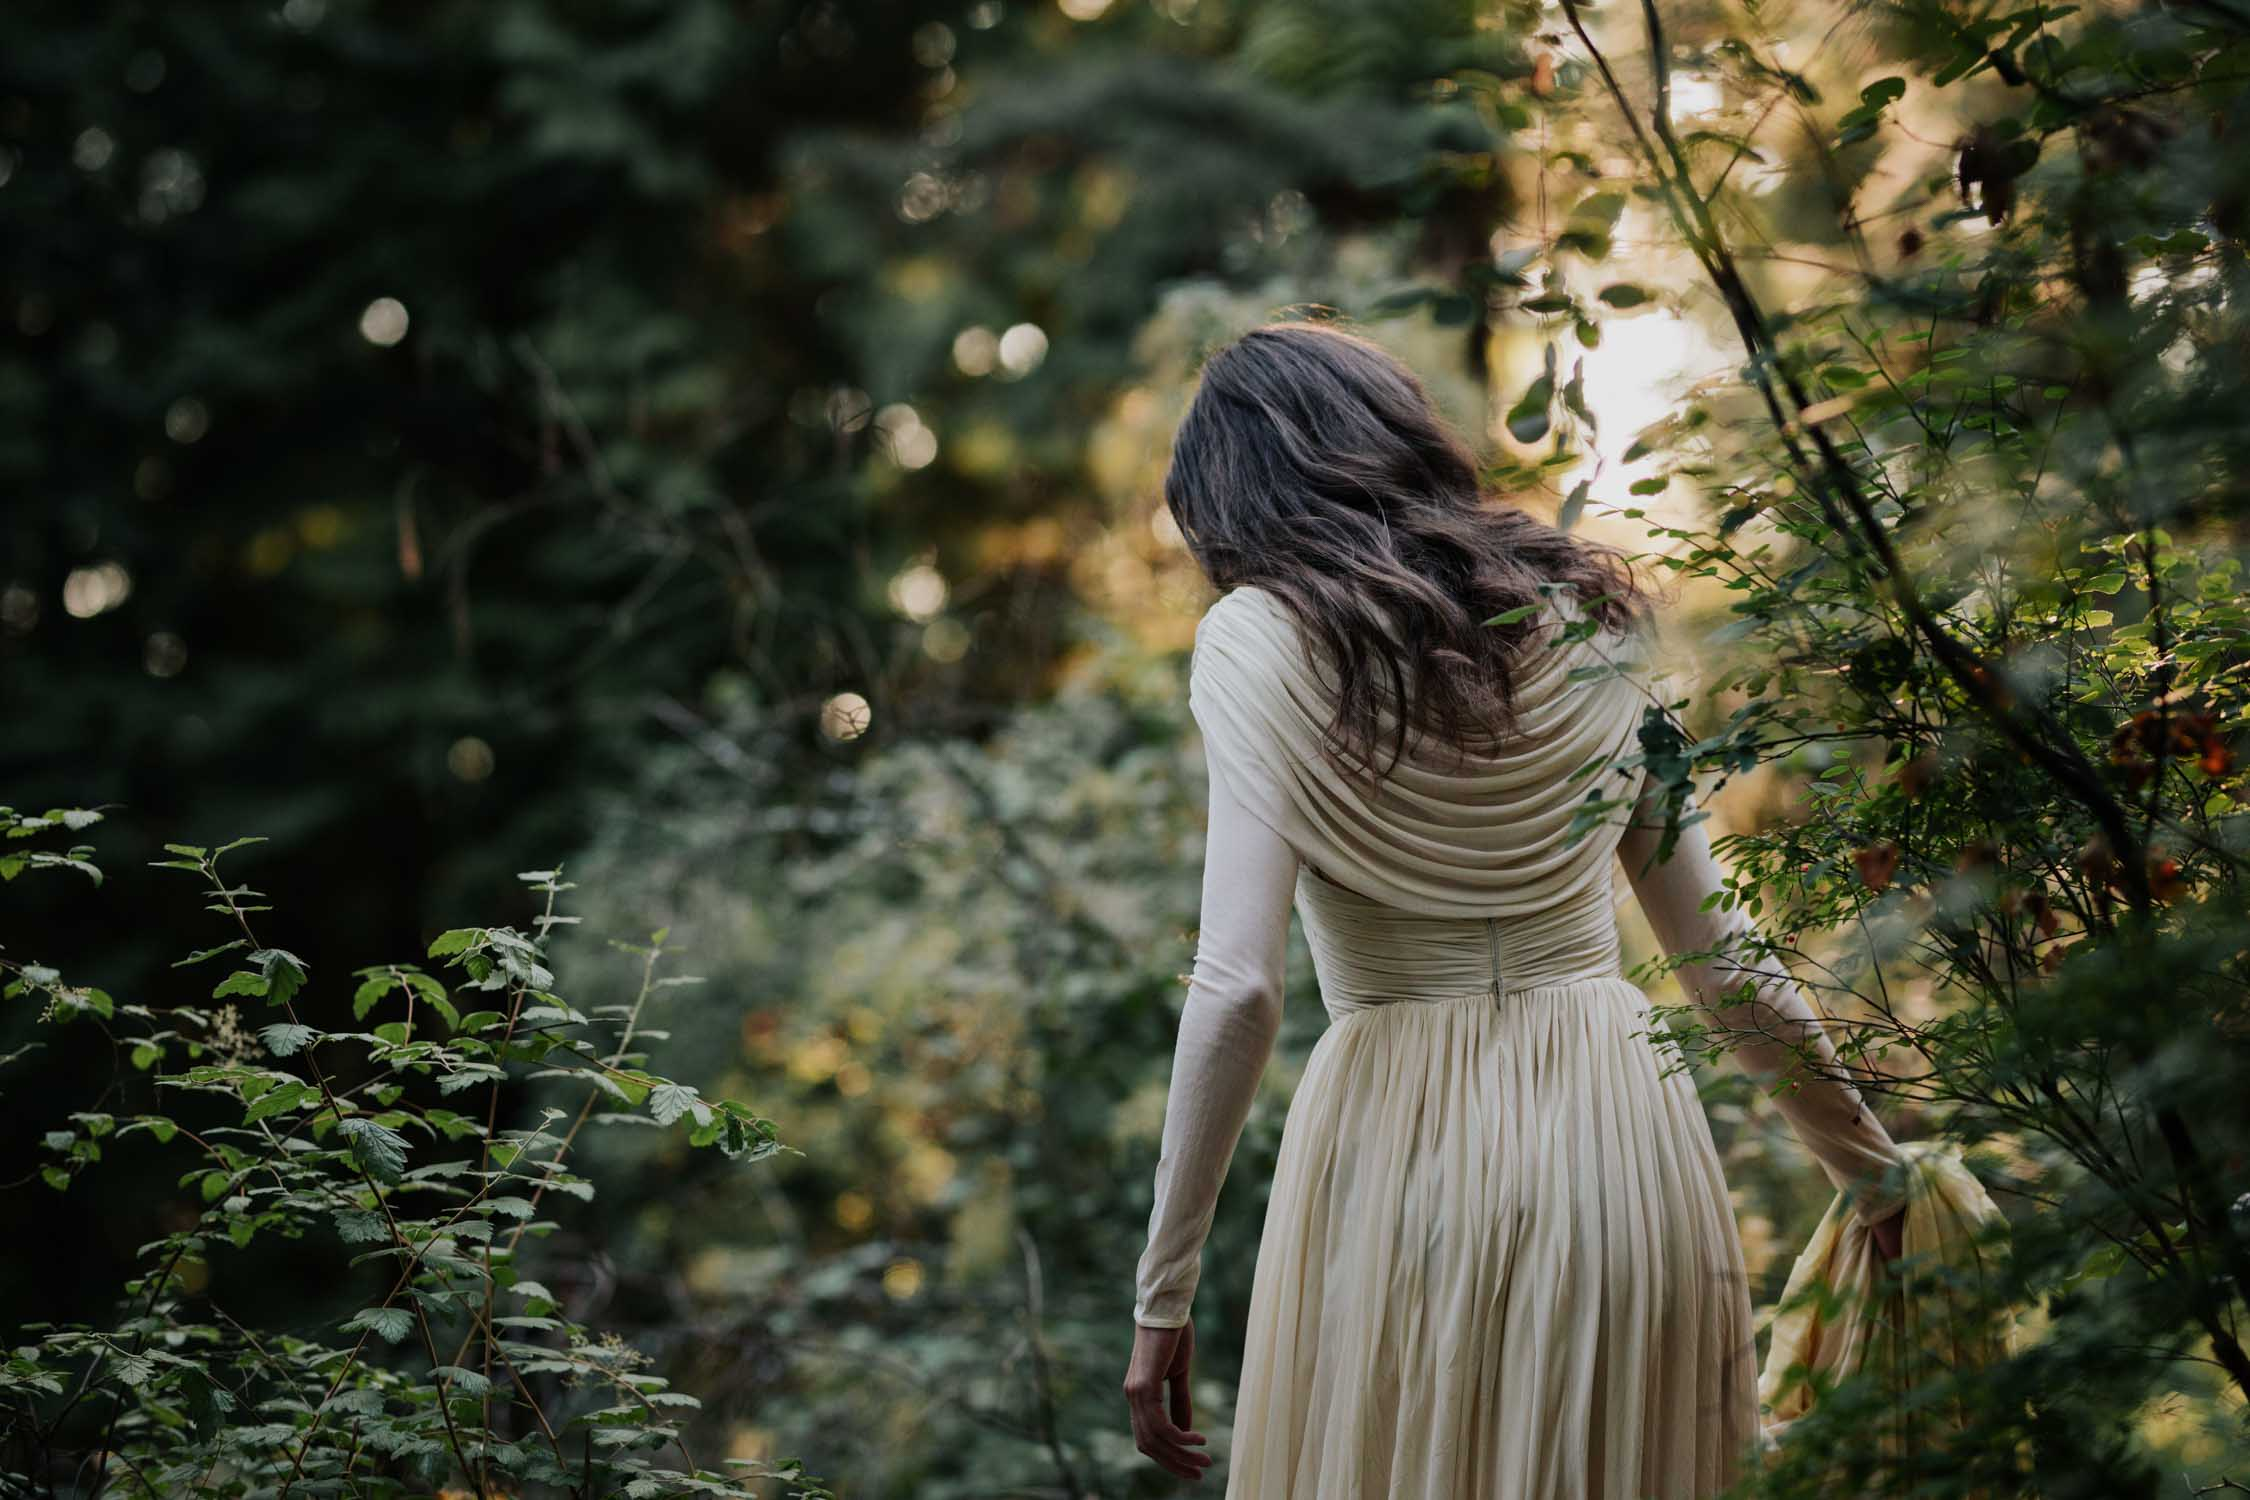 Candid Moment Of Bride Walking Through Forest Light and Trees